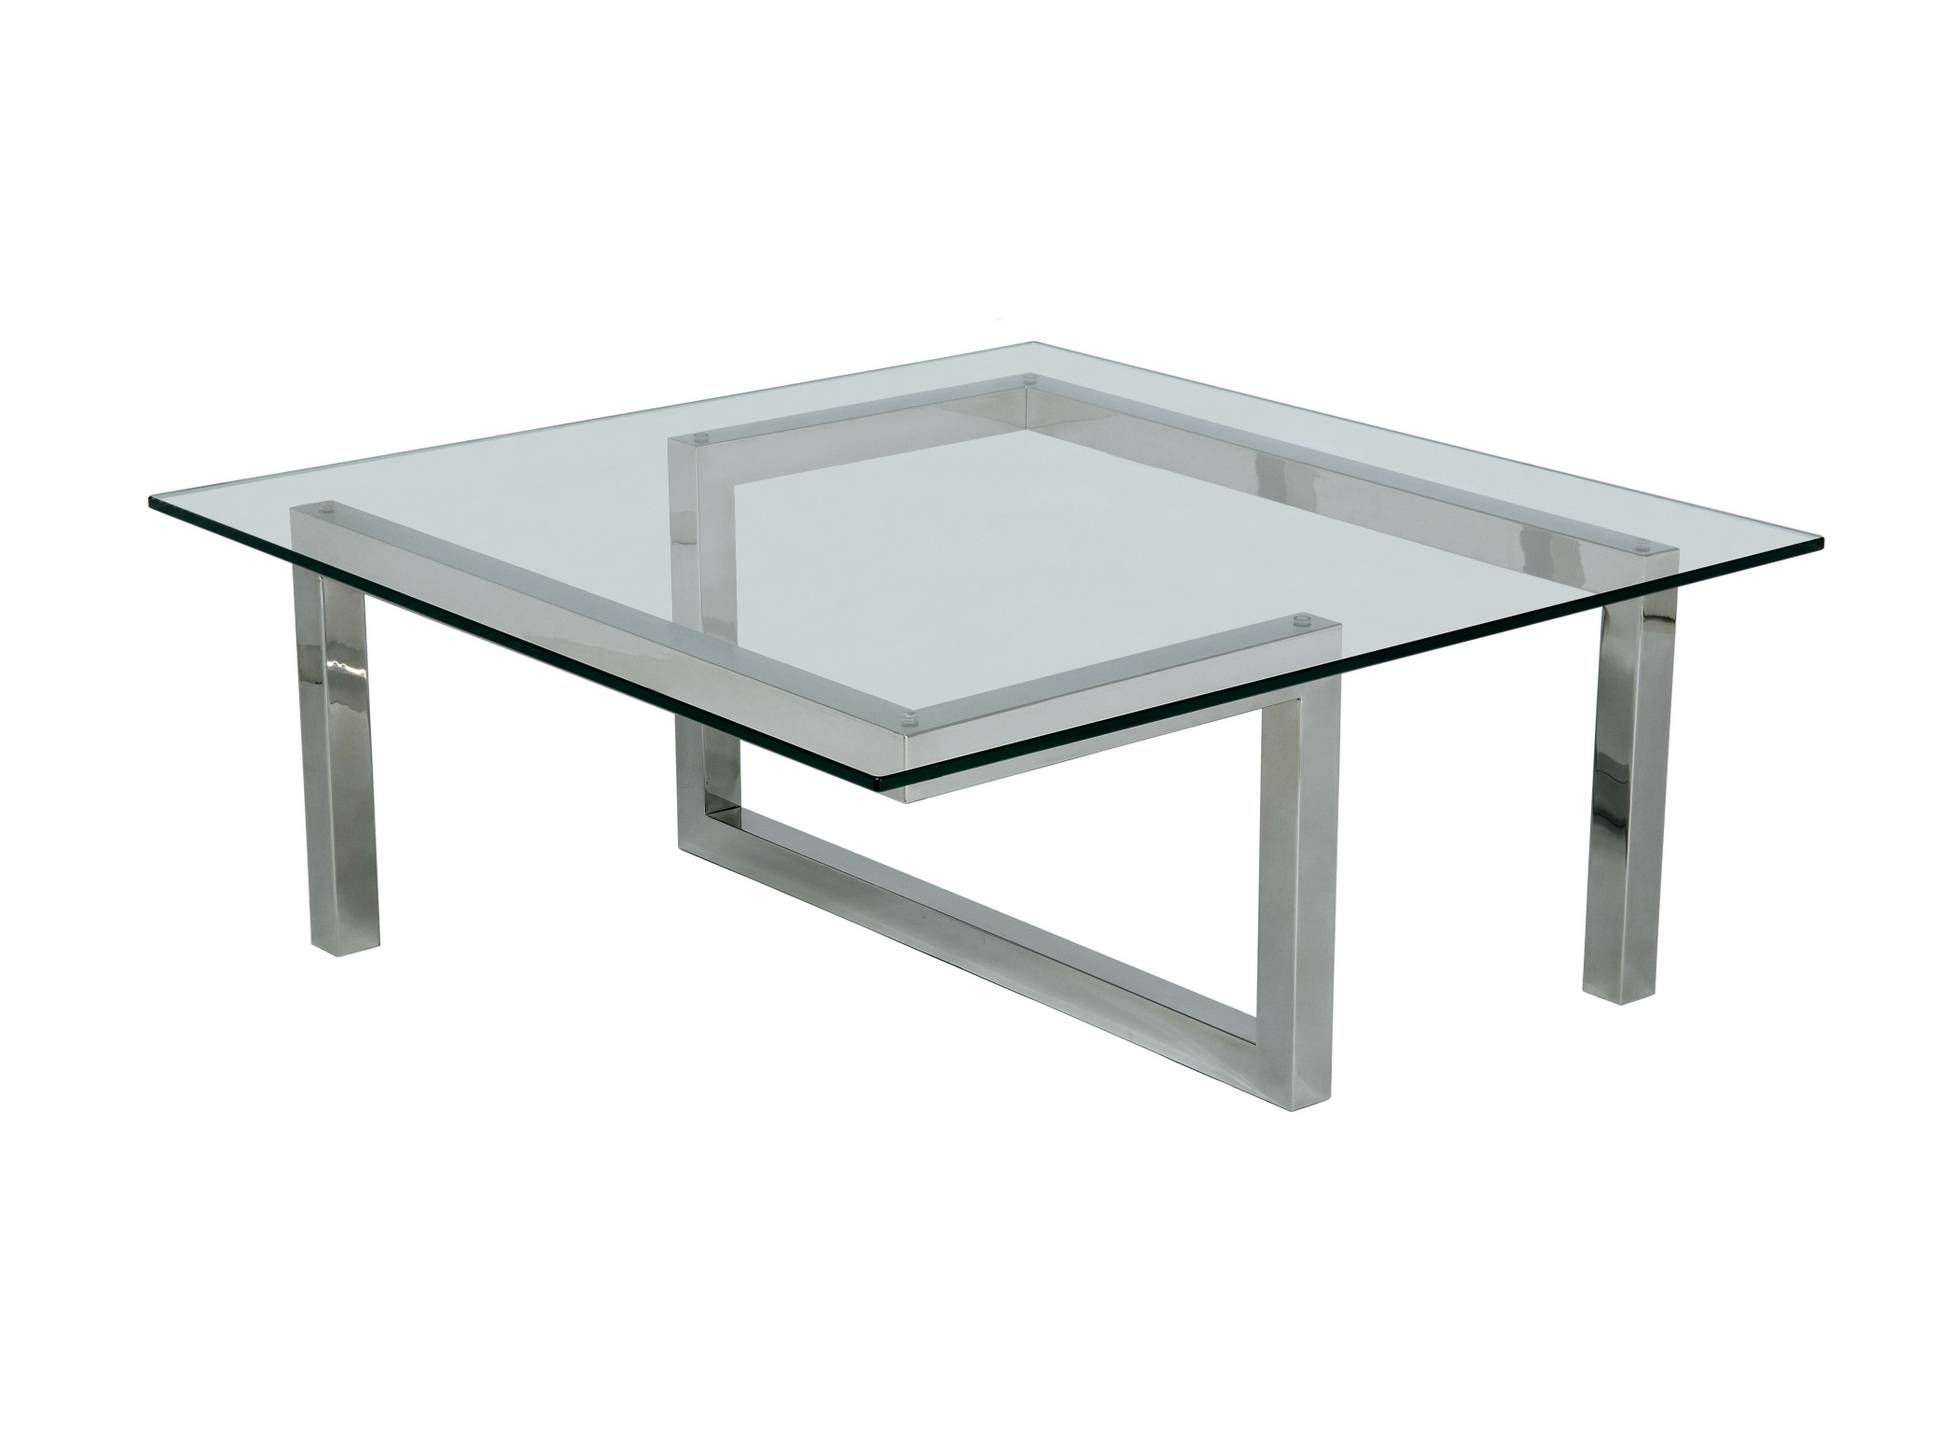 25 Photo Of Metal Oval Coffee Tables | Coffee Tables Decoration pertaining to Large Square Glass Coffee Tables (Image 1 of 30)